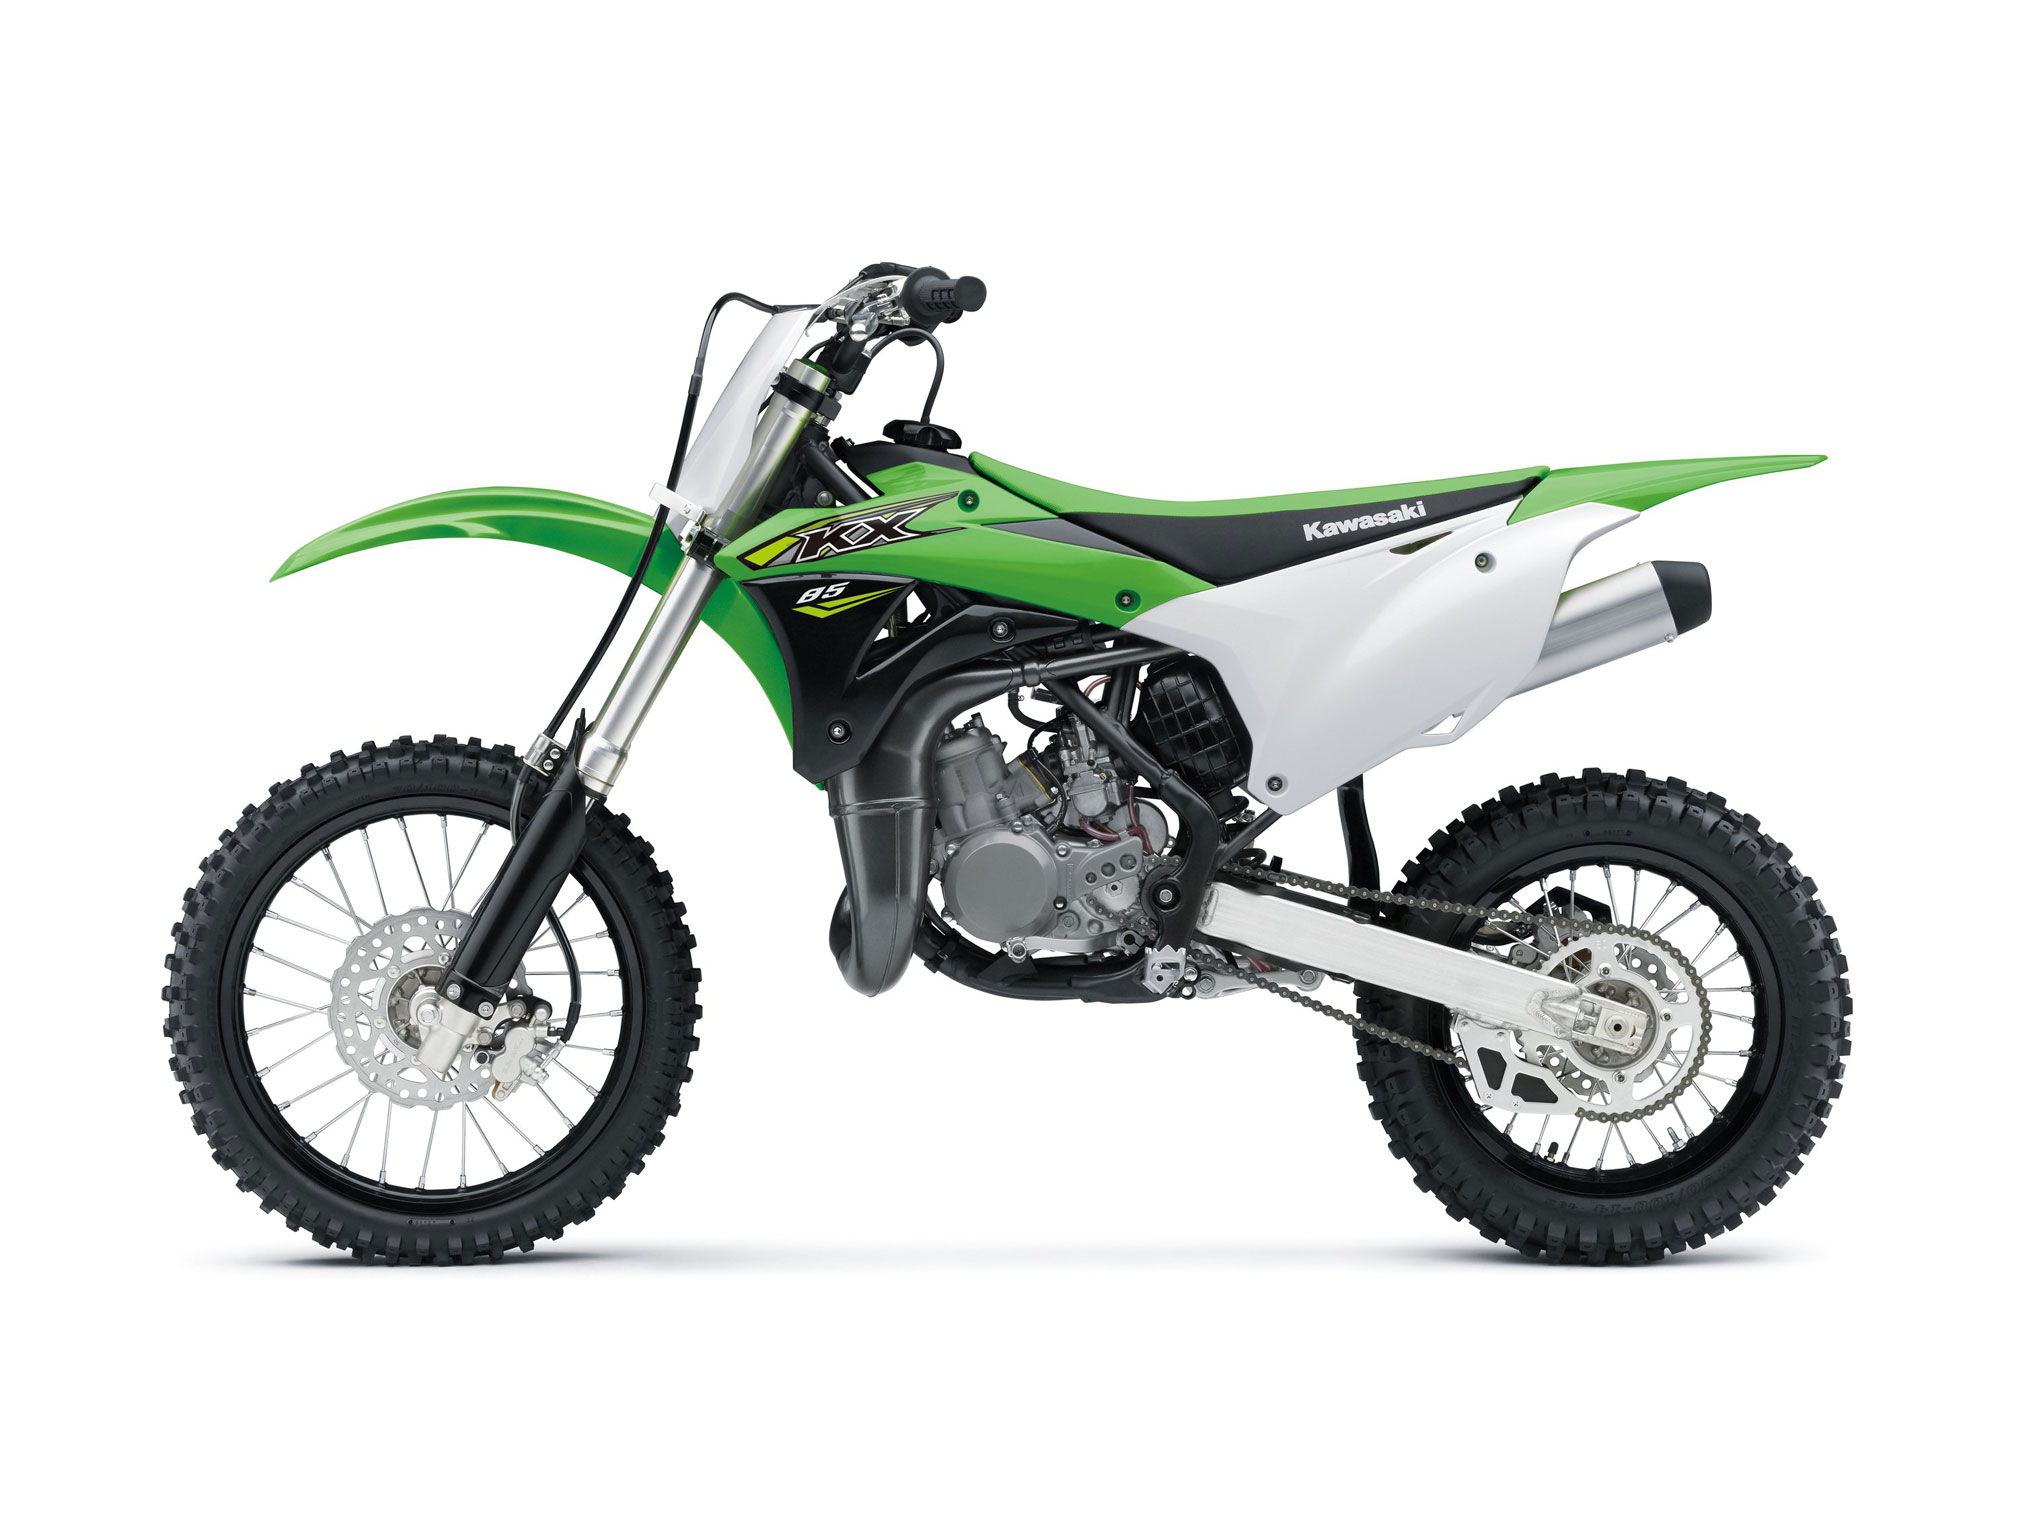 2018 kawasaki kx85 review totalmotorcycle. Black Bedroom Furniture Sets. Home Design Ideas